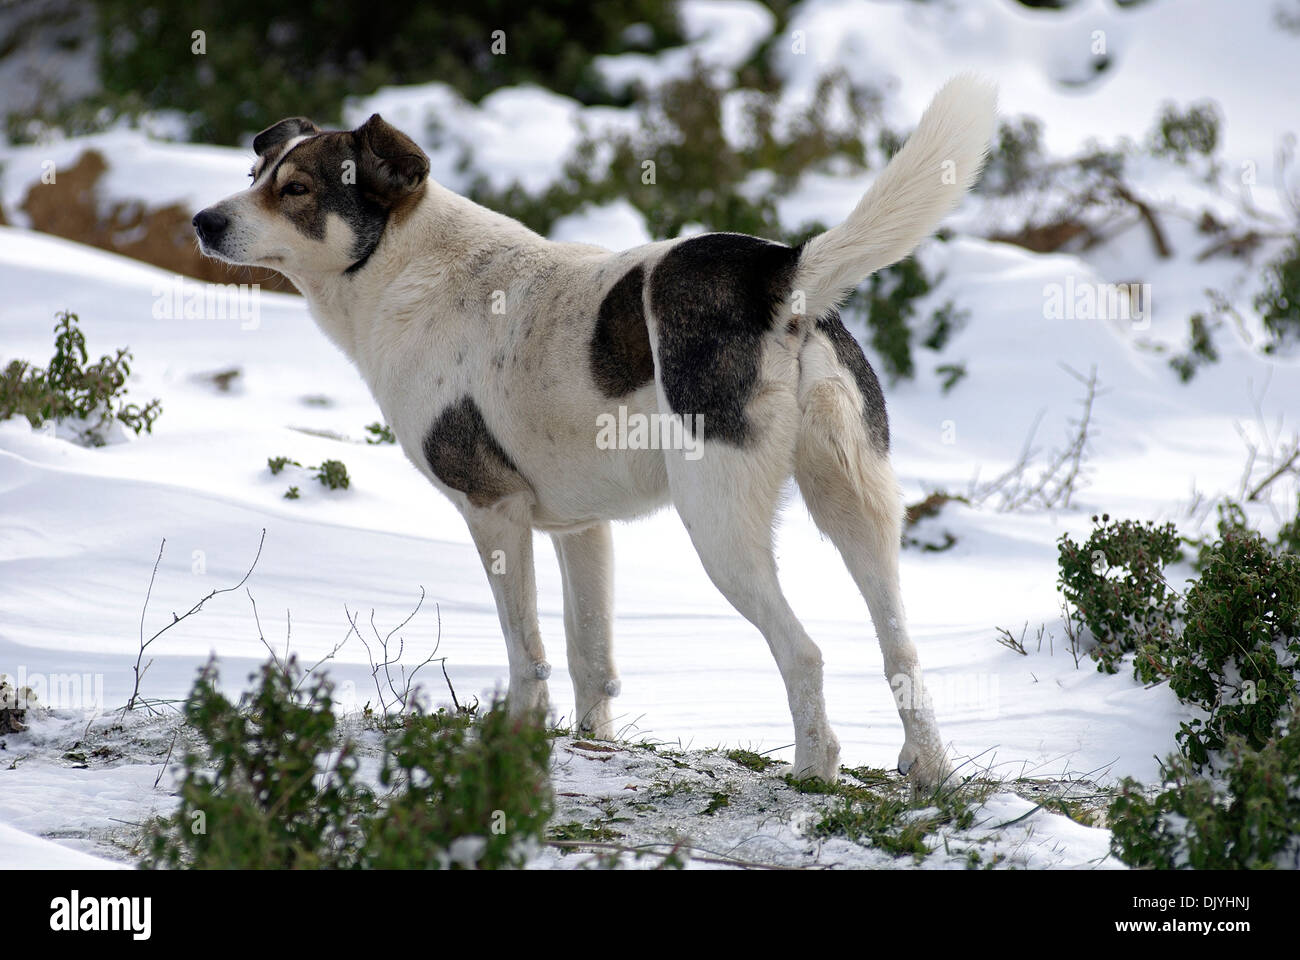 Mongrel dog standing in snow - Stock Image